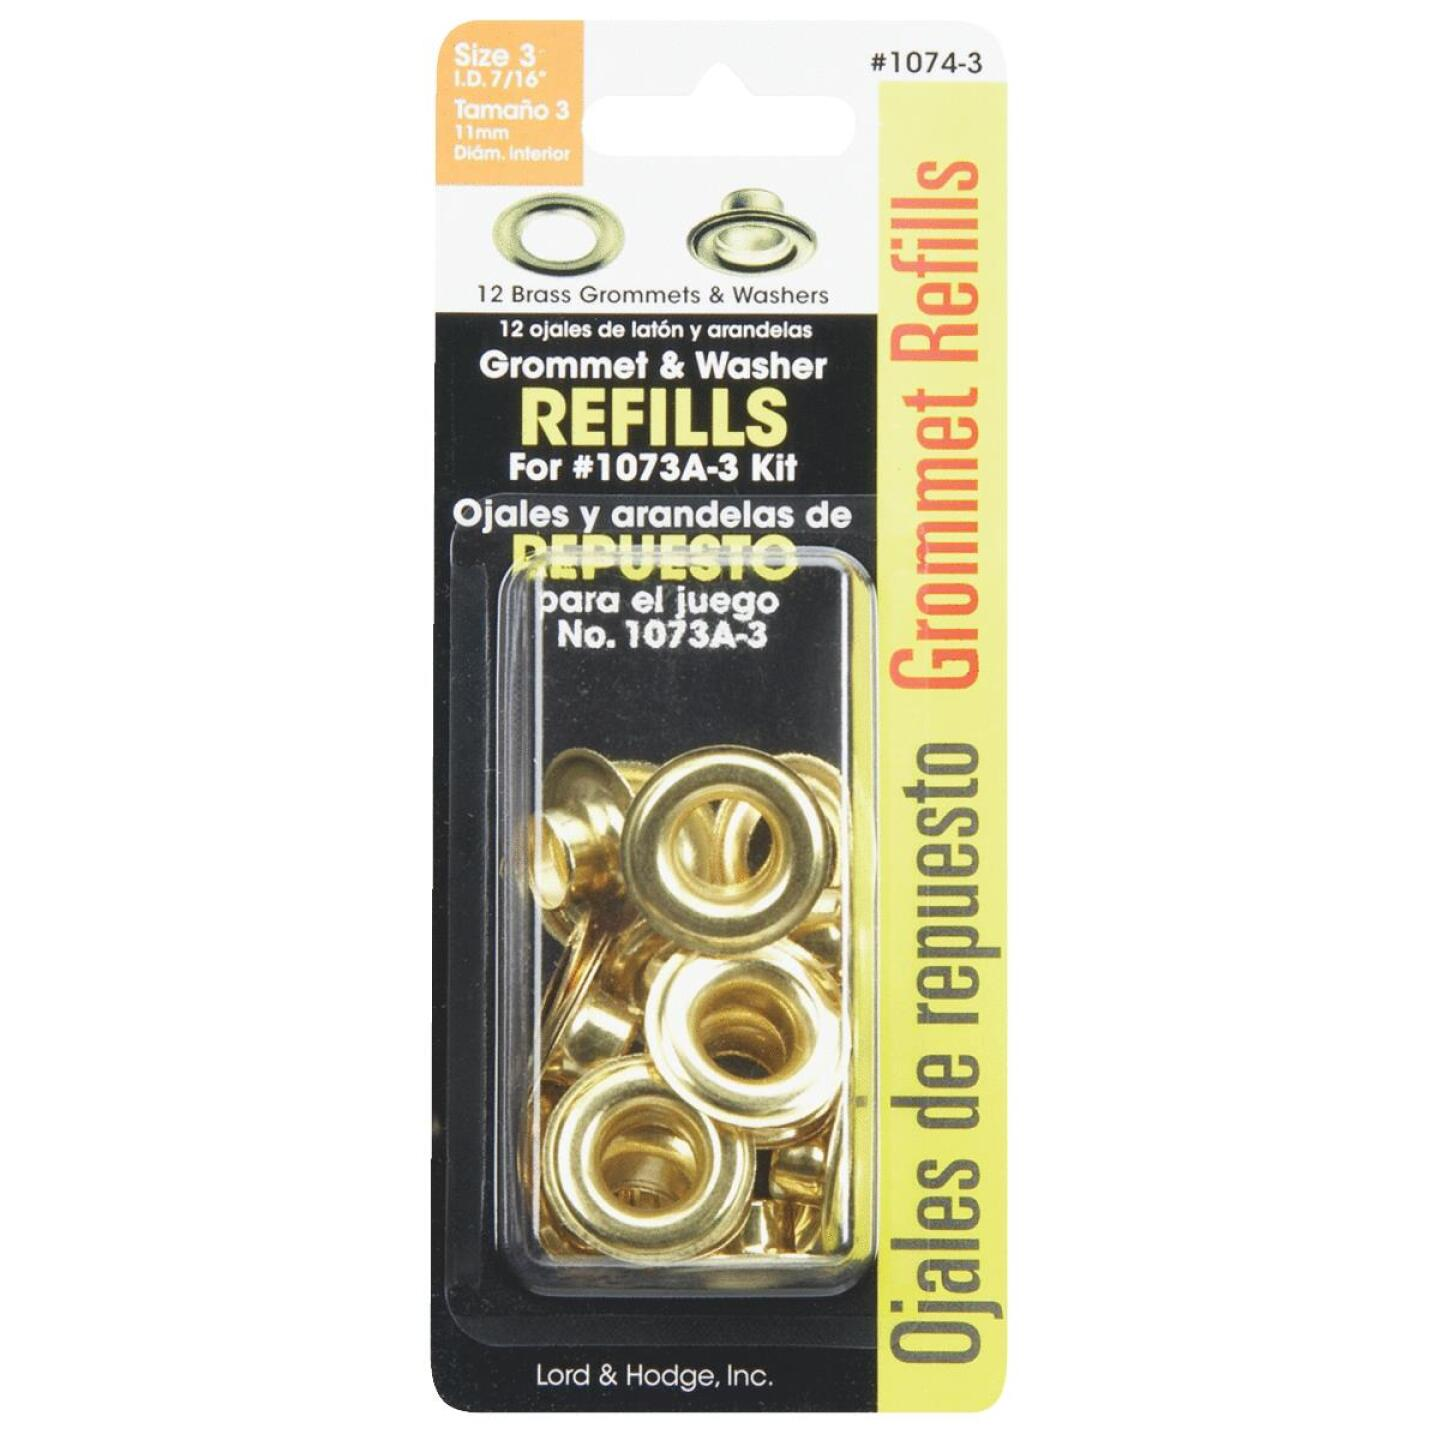 Lord & Hodge 7/16 In. Brass Grommet Refills (12 Ct.) Image 2